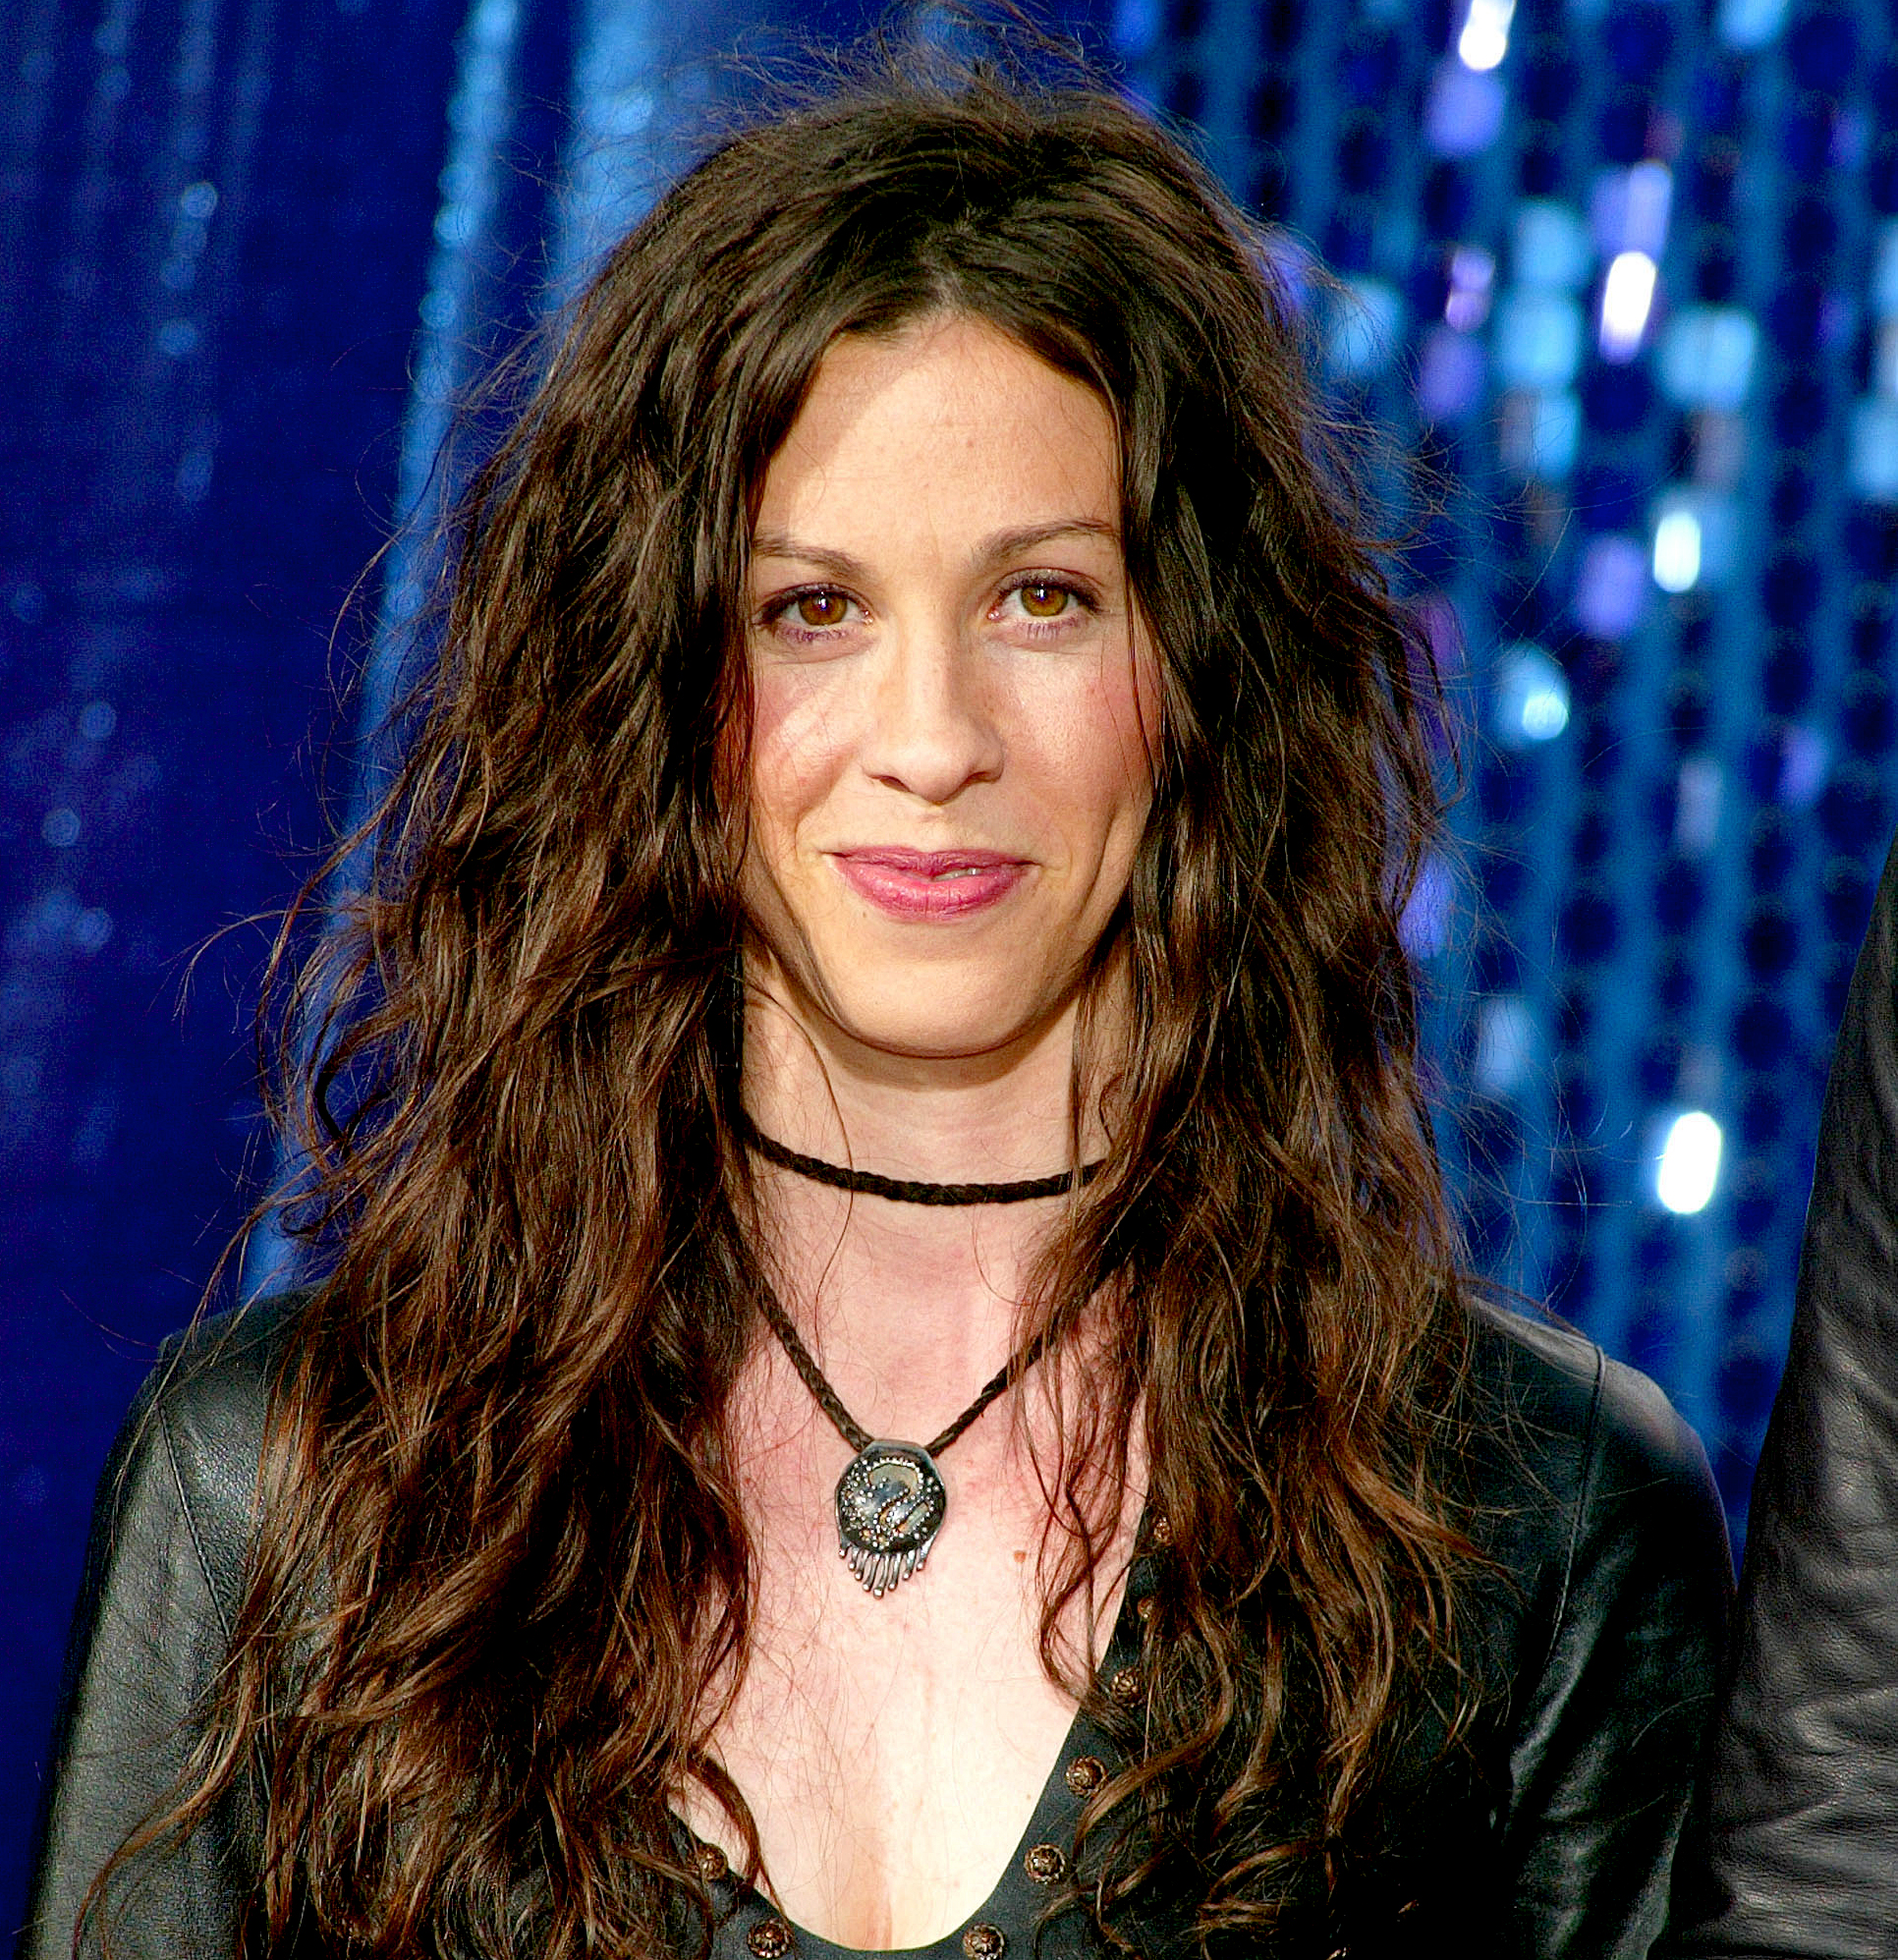 """Alanis-Morissette - The singer received such intense professional pressure and managerial demands to control her weight while recording her first album that she became anorexic and suffered from bulimia. """"I've had so many [rock bottom] moments in my life,"""" she told Elle Canada in 2009."""